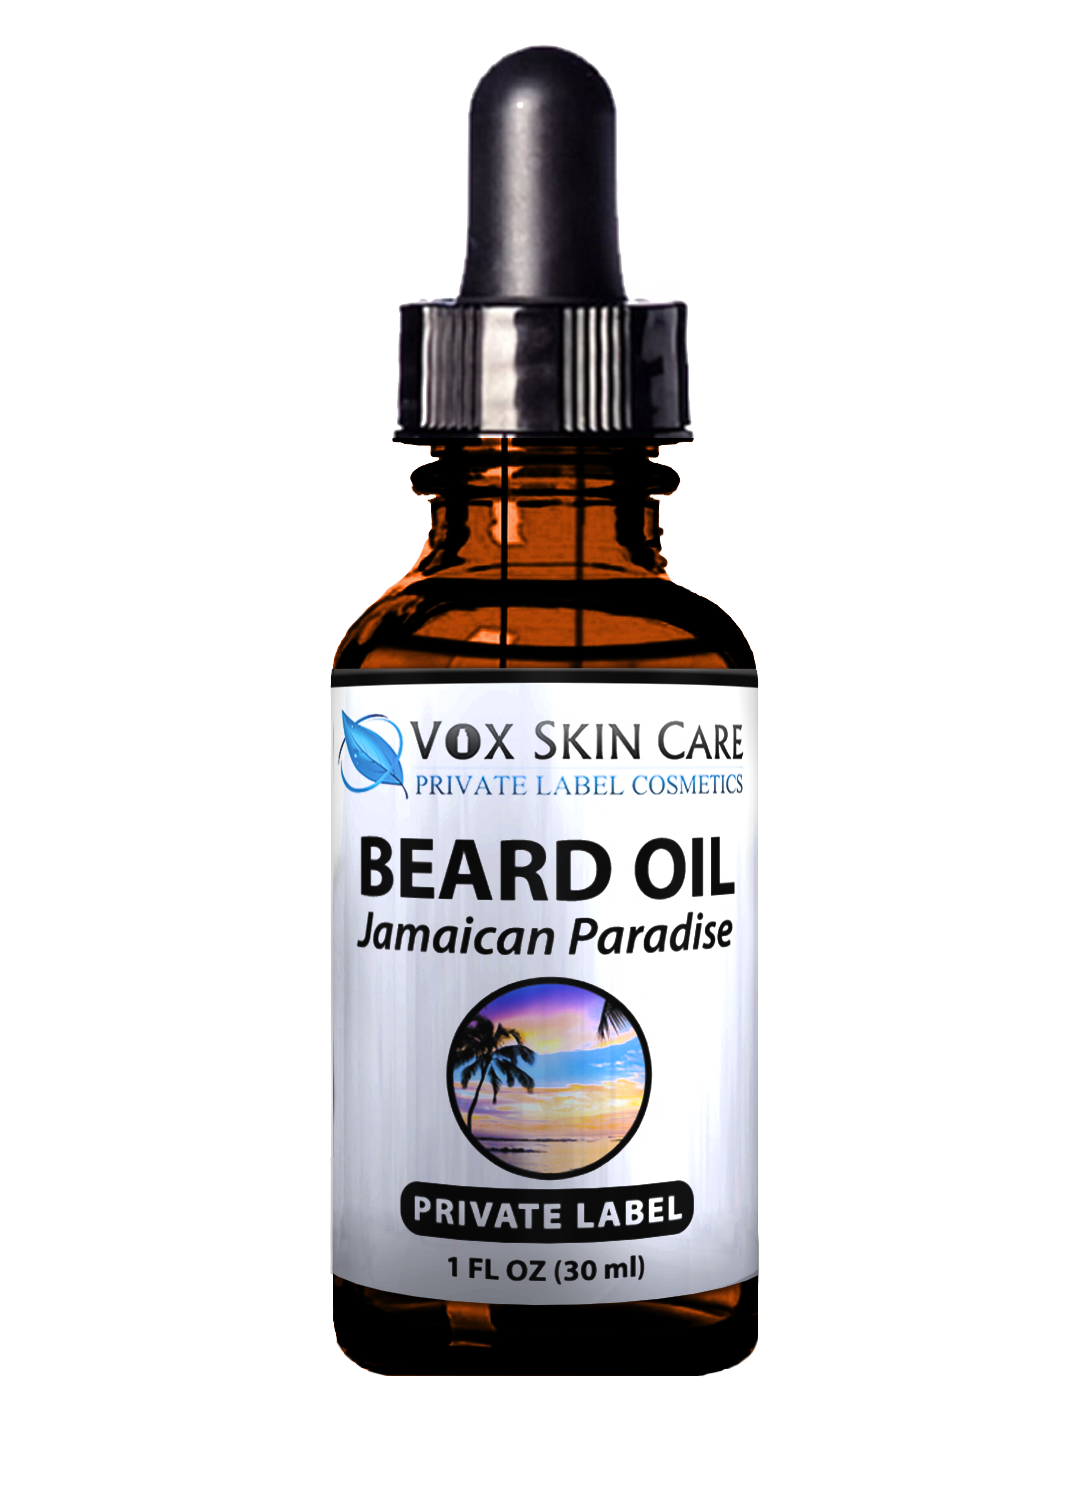 Private Label Beard Oil Jamaican Paradise Scented Cosmetic Skincare